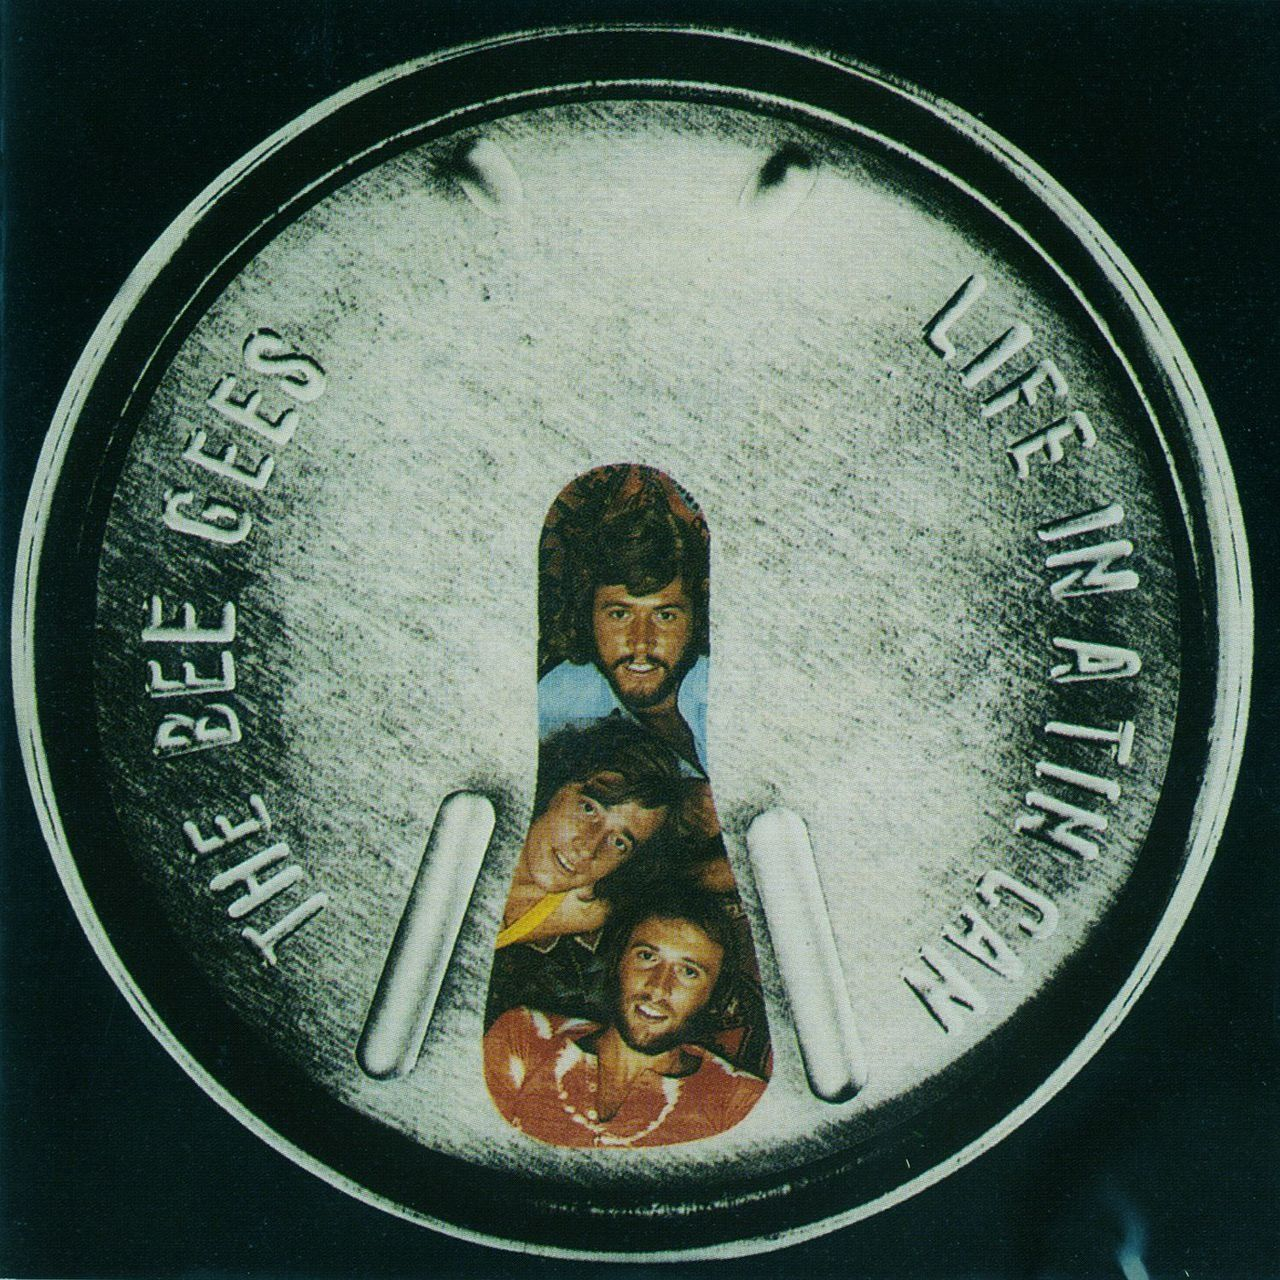 Album artwork for 'Life In A Tin Can' by The Bee Gees